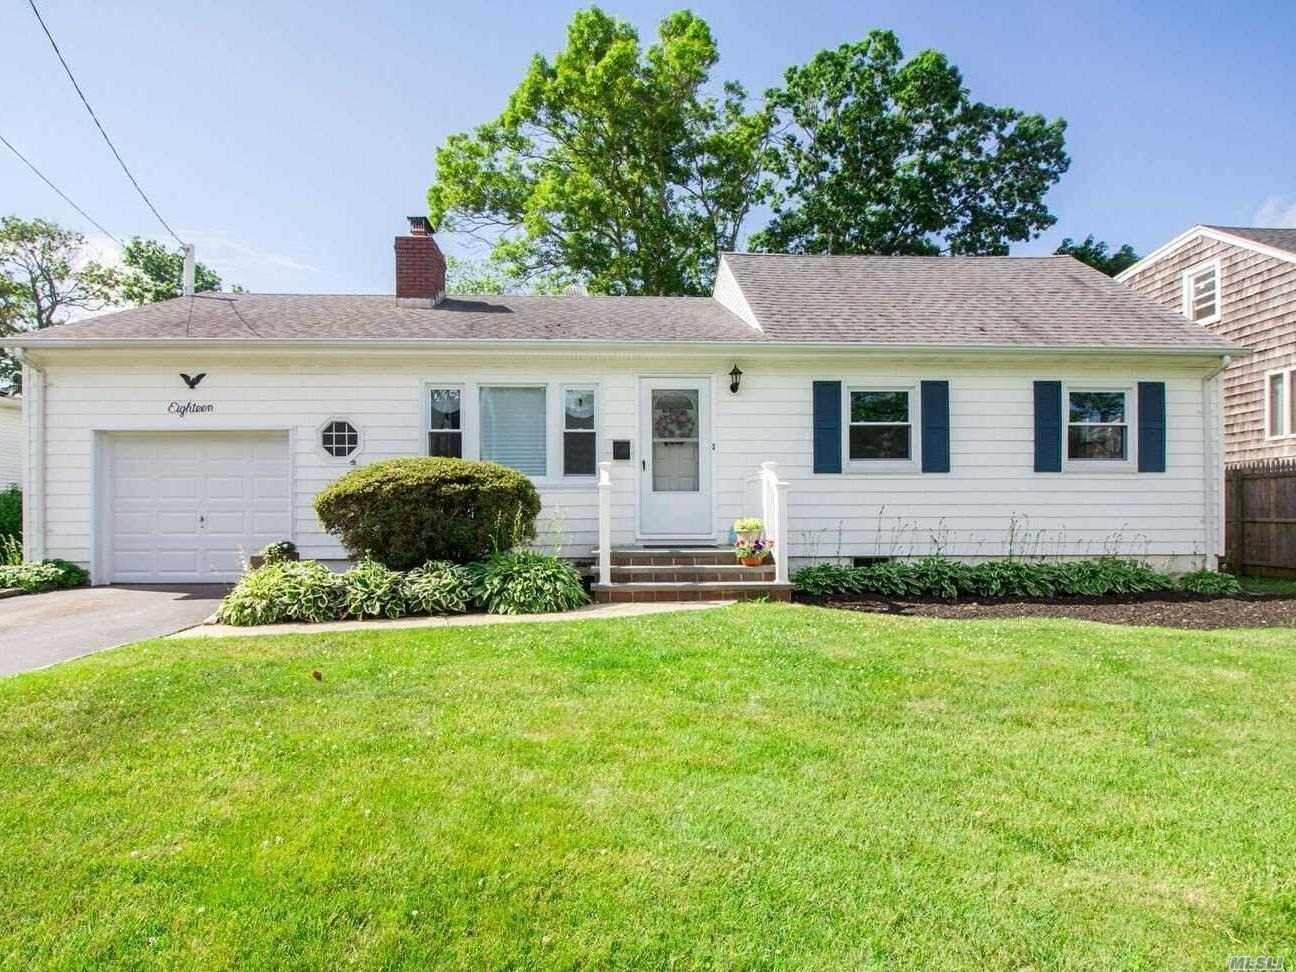 Frederick Shores Neighborhood S Of Montauk,  Move Right In. Private, Oversized Backyard, New Gleaming Hwf, 5 Year Windows And Siding, 10 Year 1 Layer Roof, Room For Mom. Beach Club Membership, Dock Nearby. No Flood Ins Required. Perfect For Extended Family